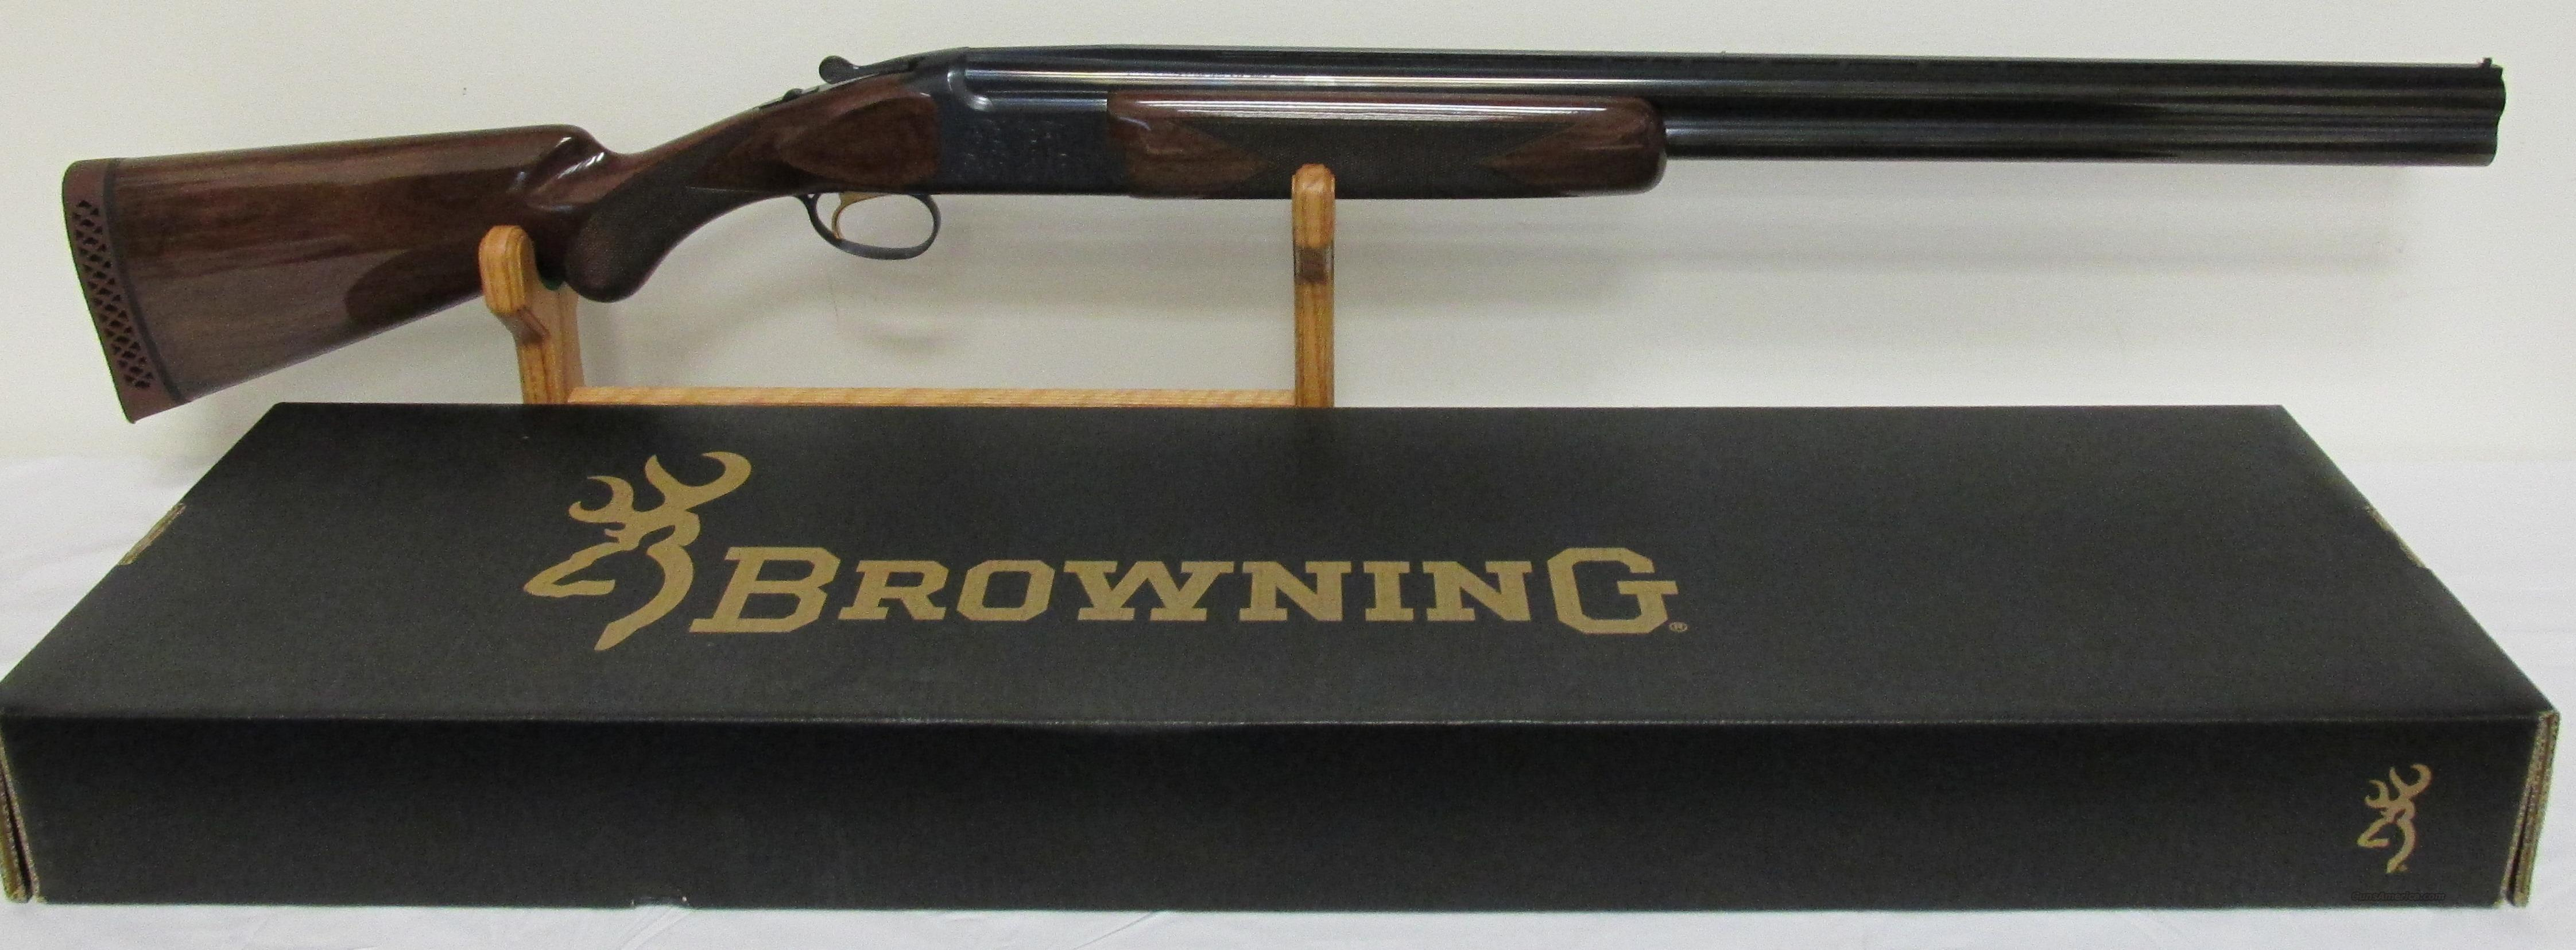 Browning Citori Lightning NOS 12GA O/U (2004 MFG)  Guns > Shotguns > Browning Shotguns > Over Unders > Citori > Hunting